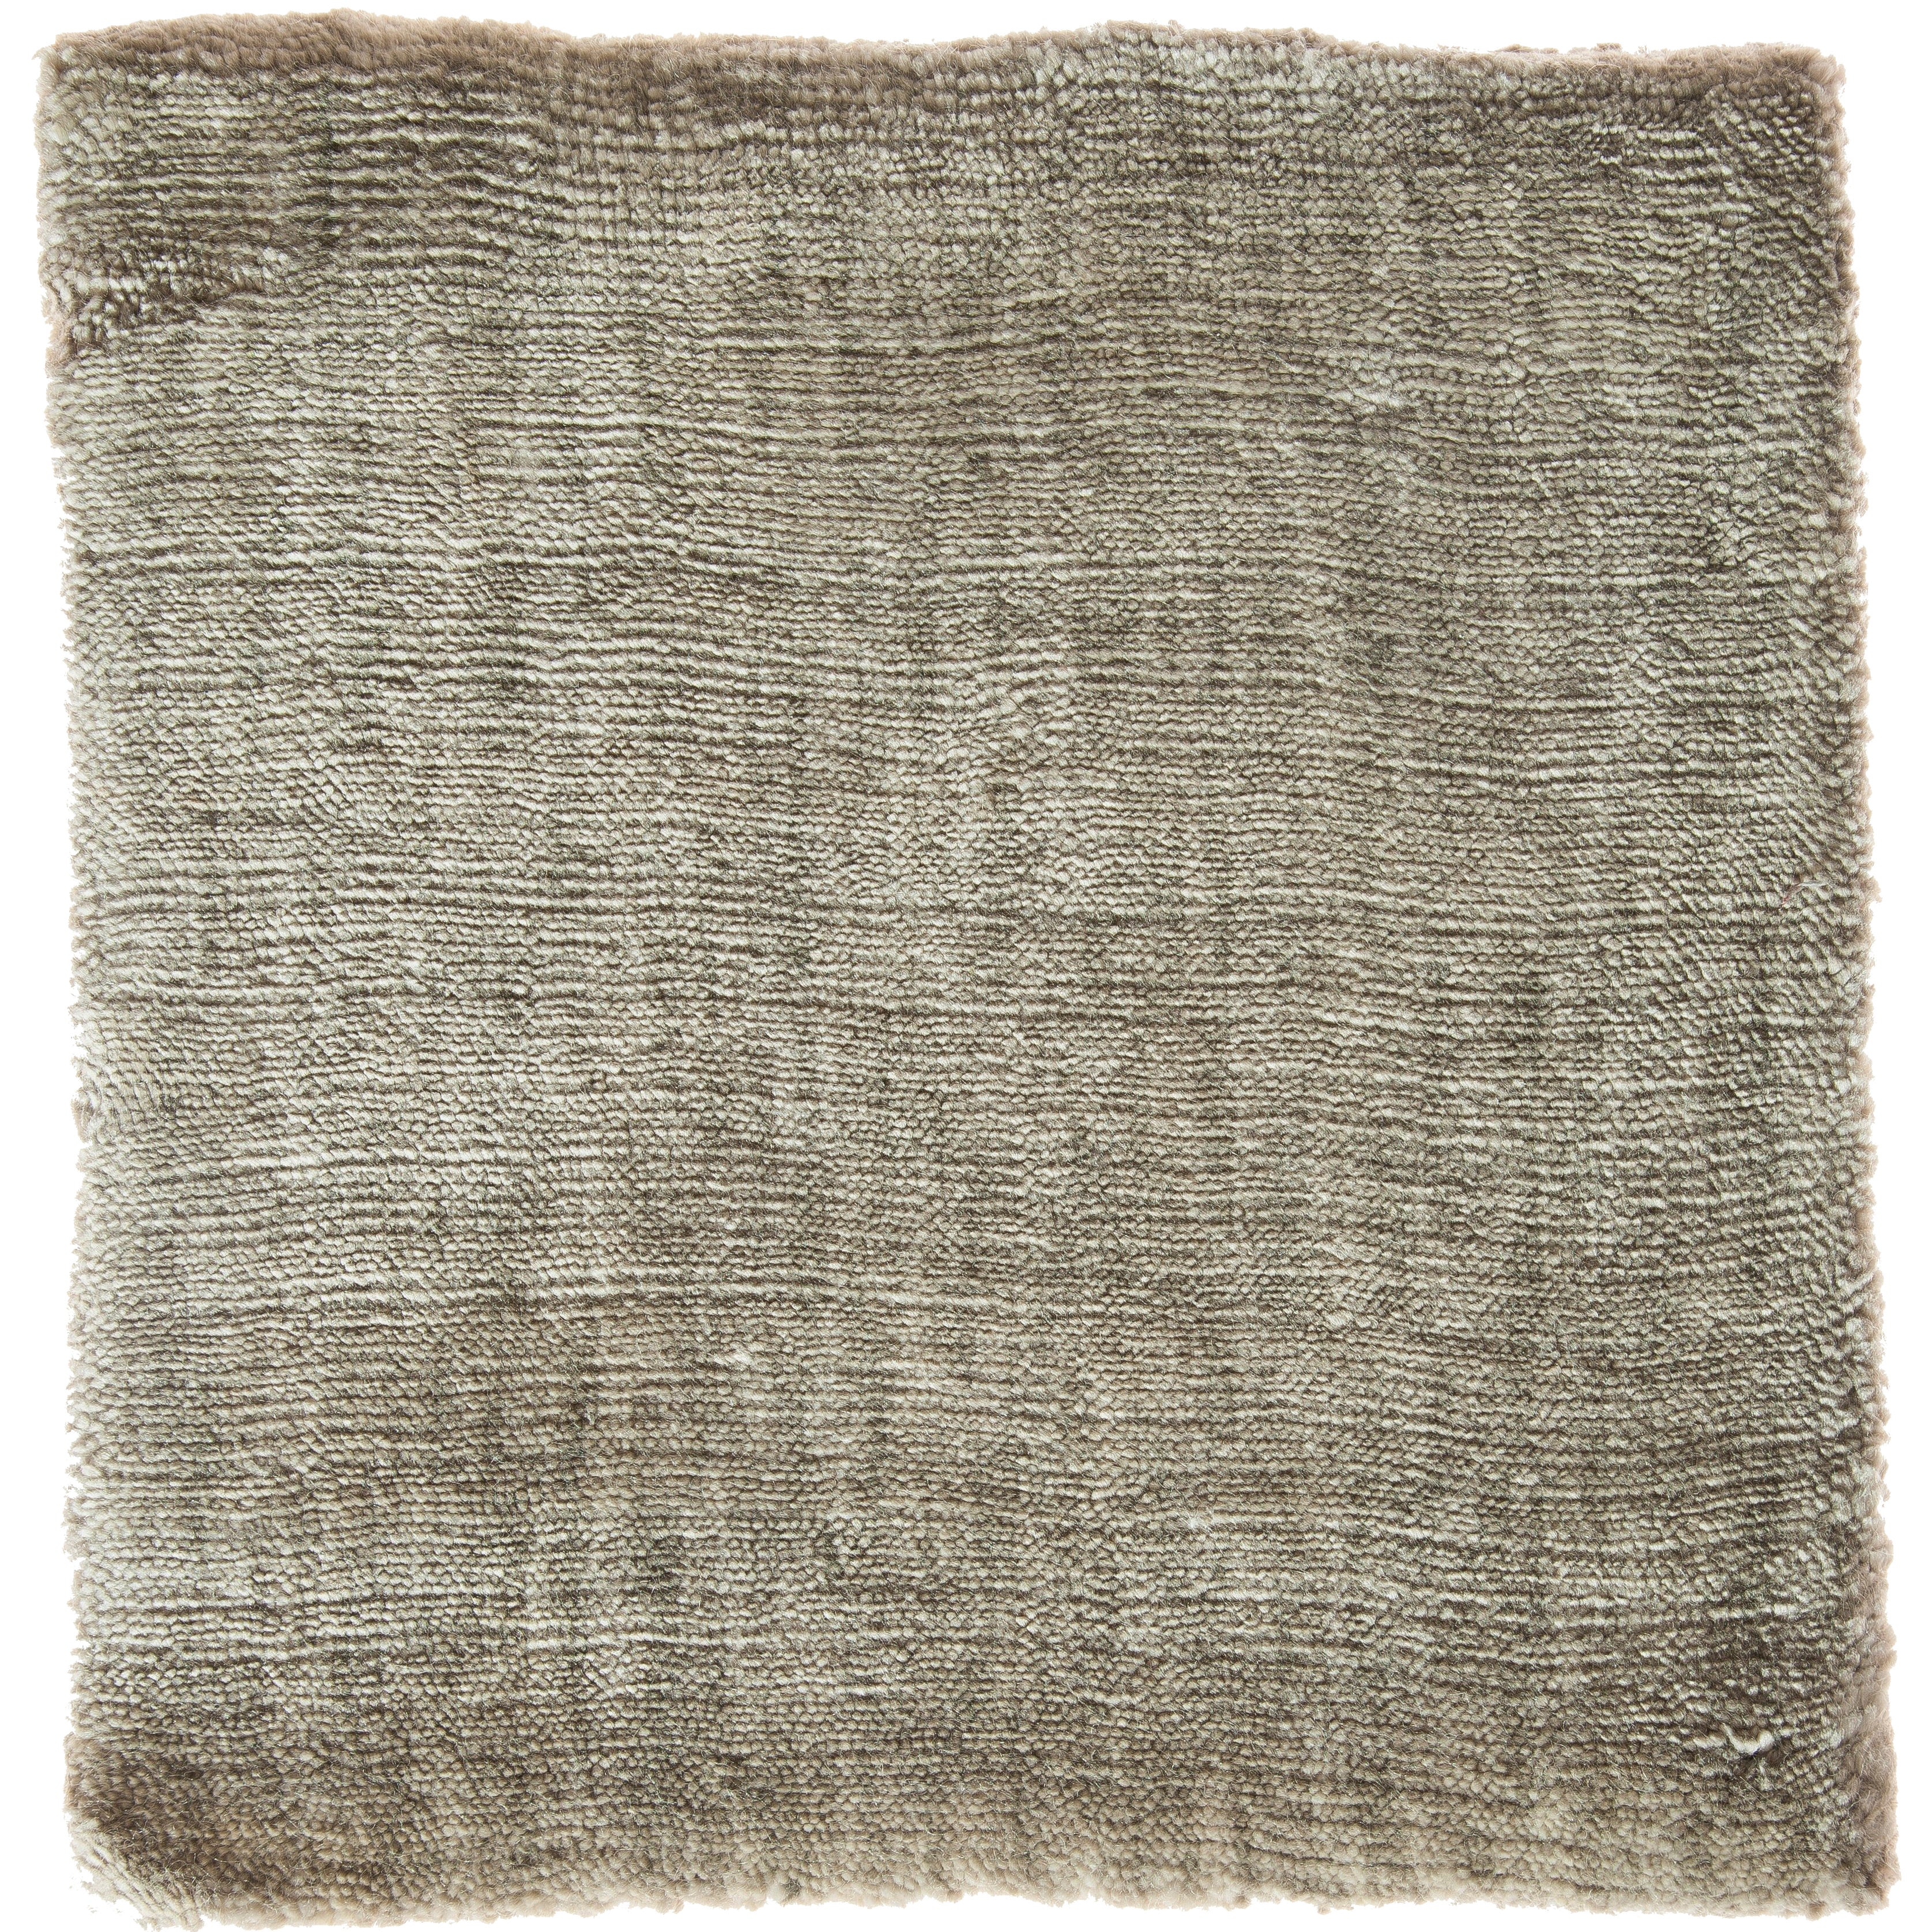 Light Green Olive Color Hand-Loomed Bamboo Silk Solid Neutral Rug in Any Size